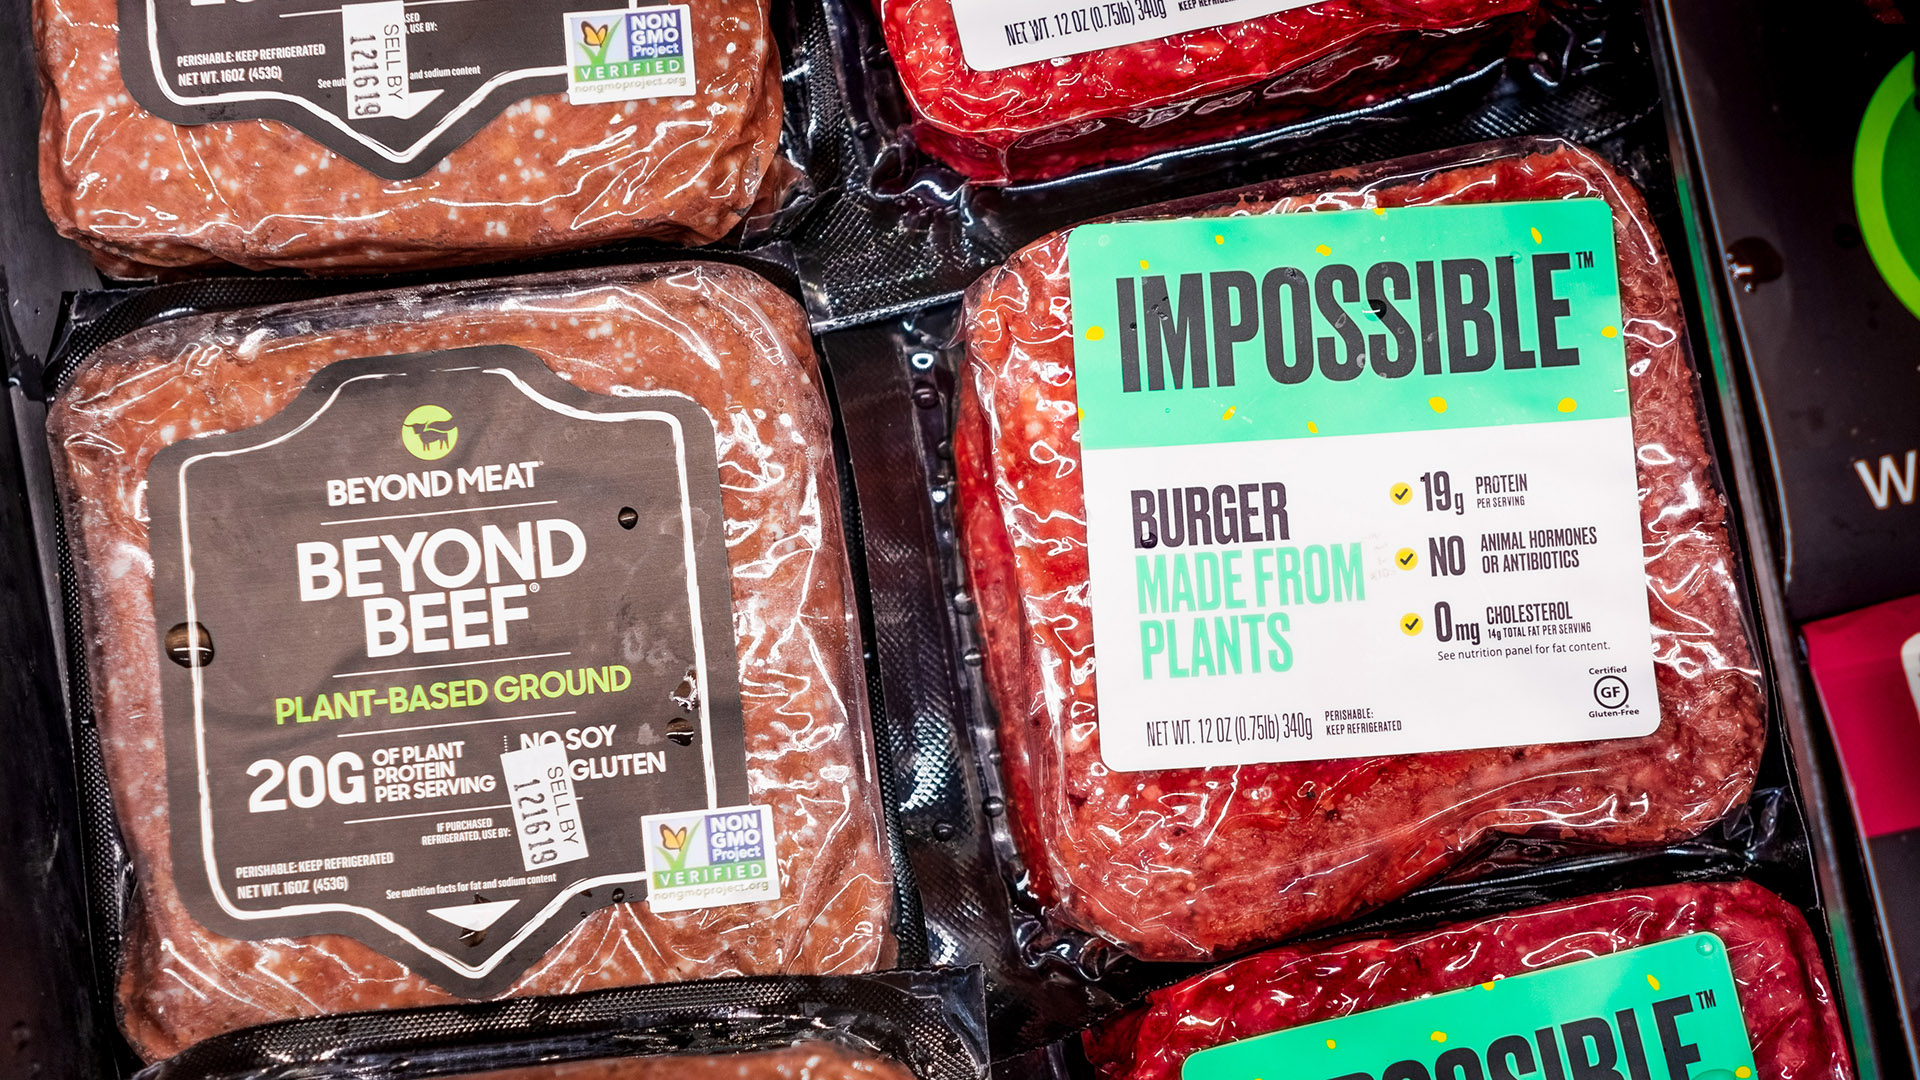 Impossible, Beyond & Nestlé's plant-based burgers disrupt the meat industry